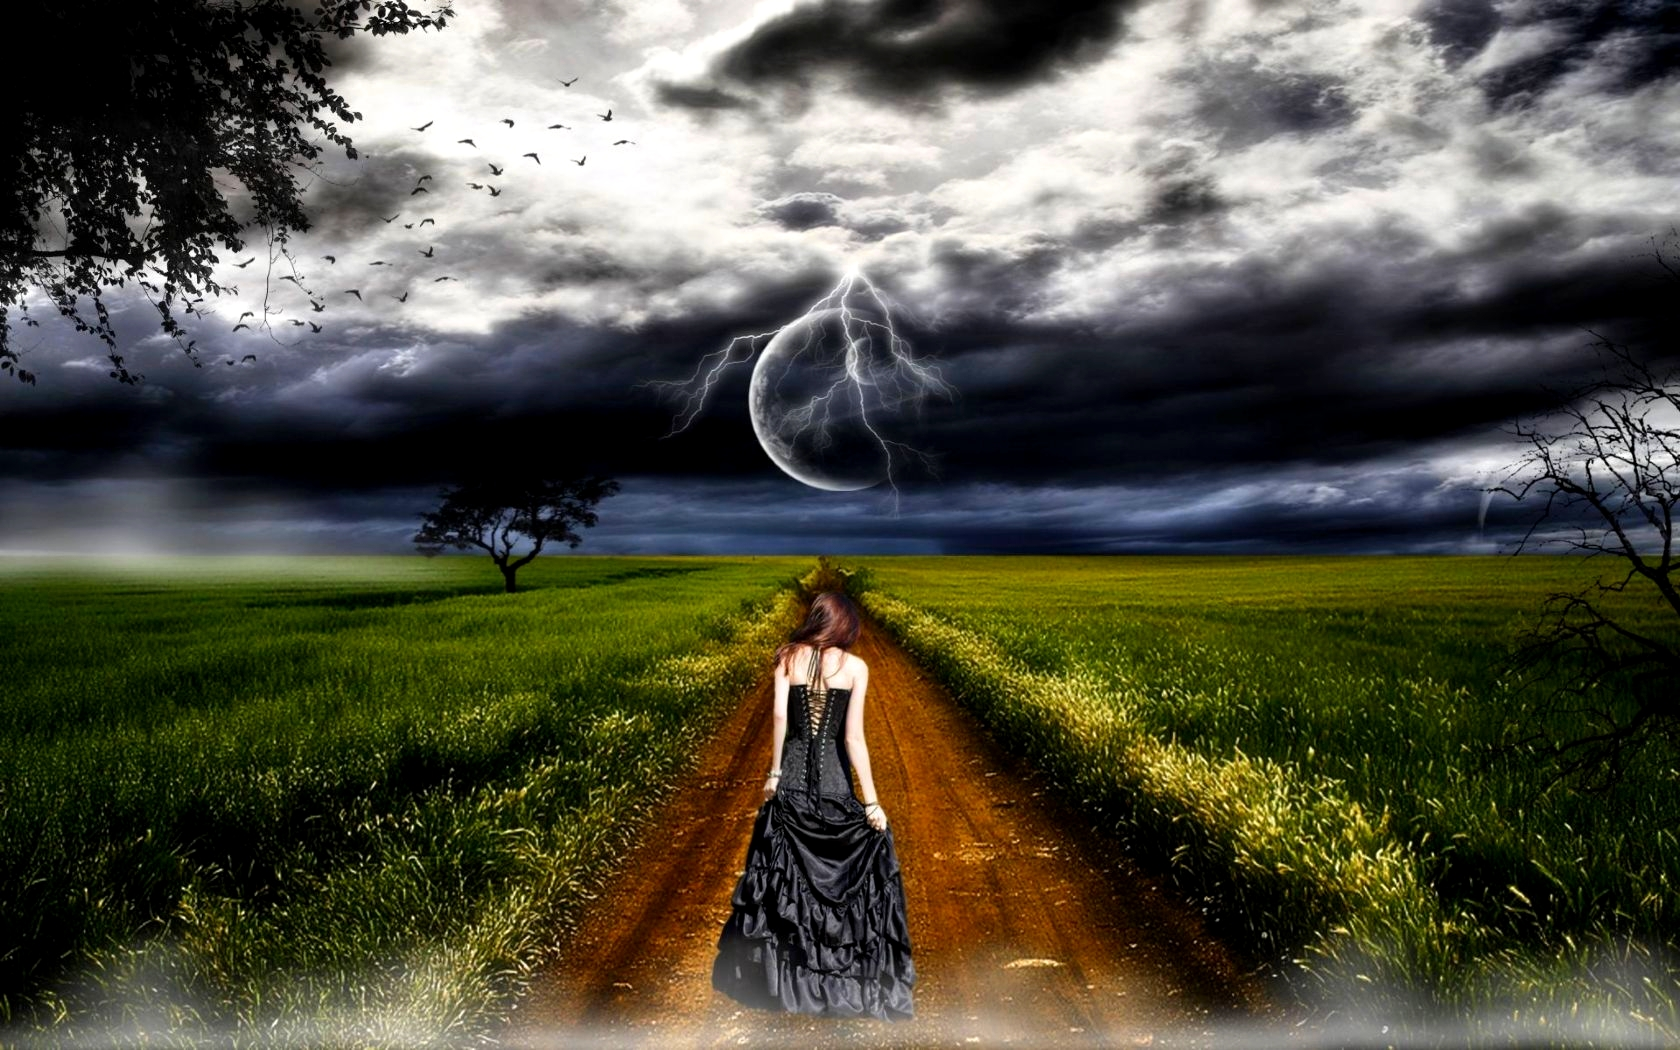 THIS LONG ROAD I TRAVEL, Birds, Blackdress, Clouds, Dark, Field, Fog Wallpaper